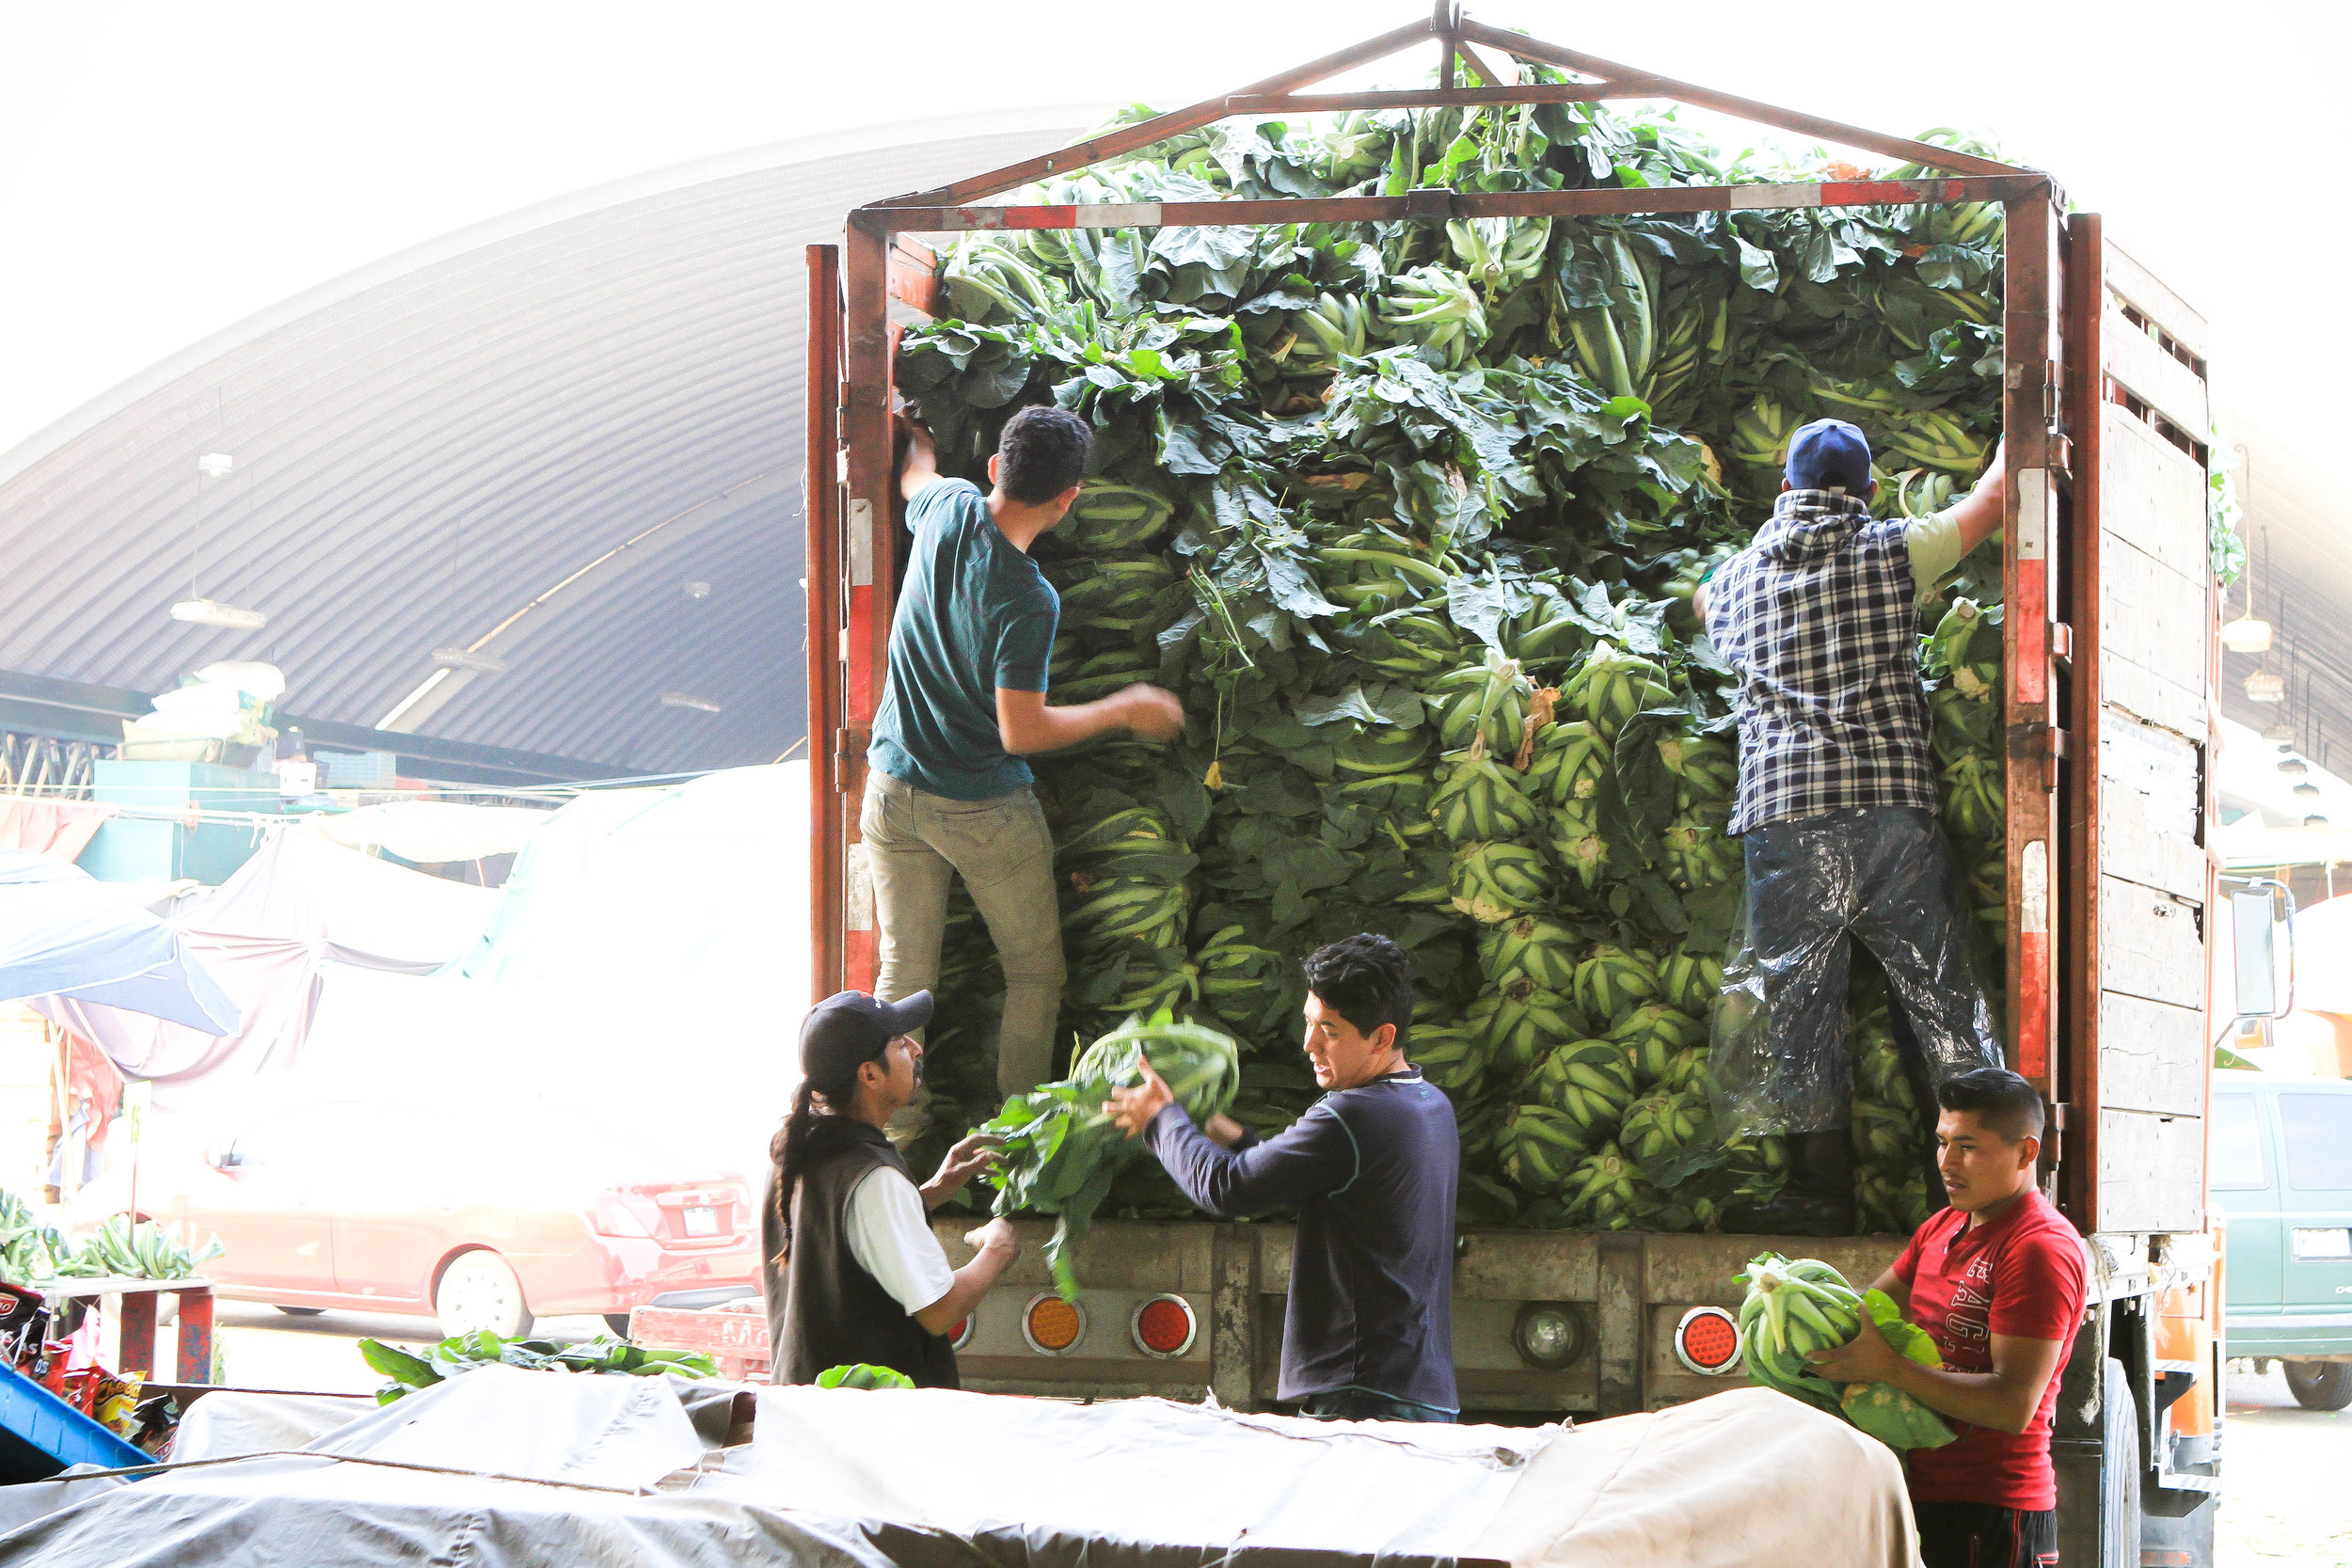 Workers unloading a massive amount of greens